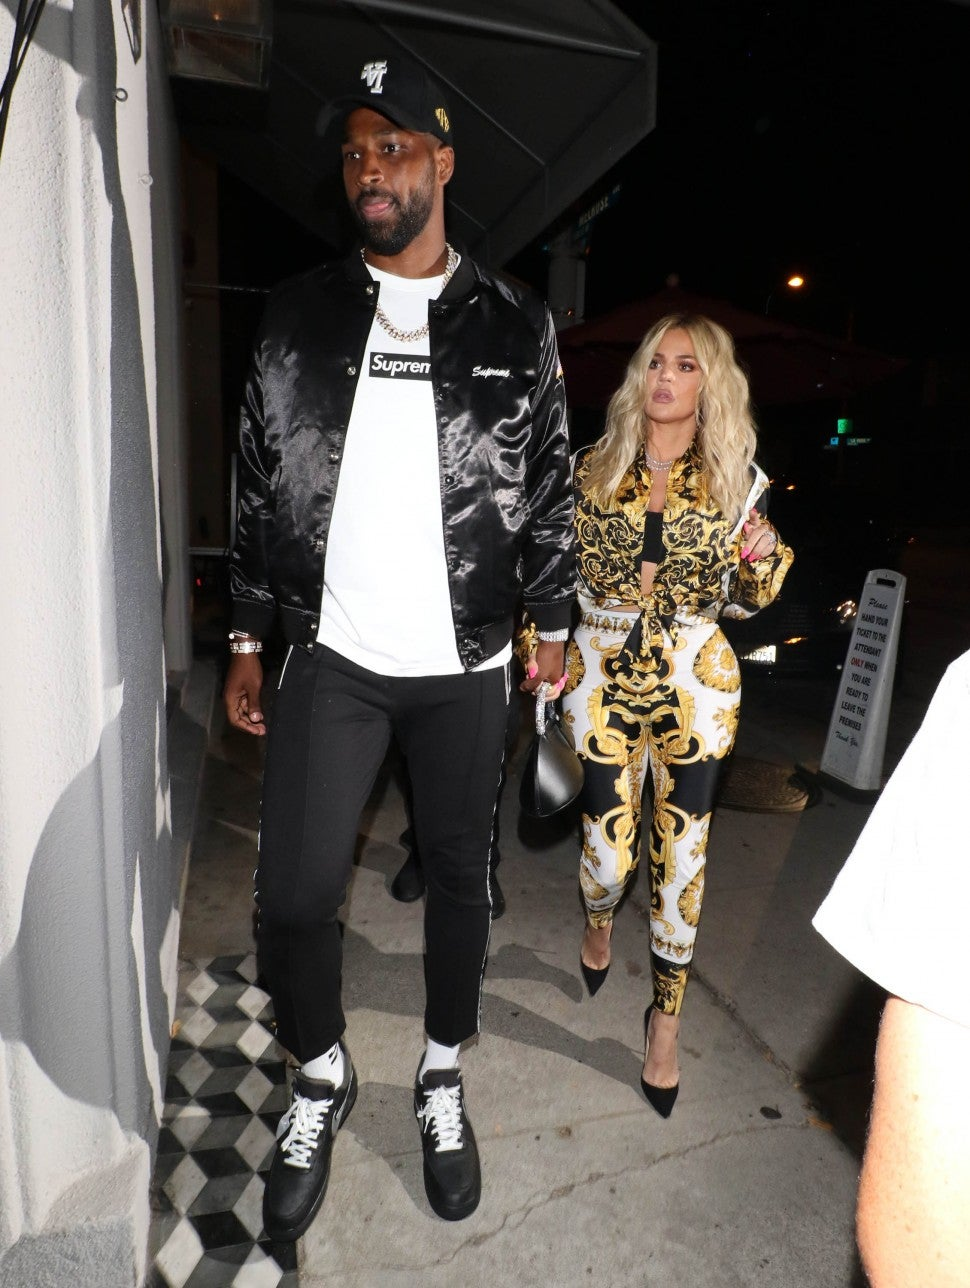 TRISTAN_THOMPSON_KHLOE_KARDASHIAN_gettyimages-1018749270.jpg